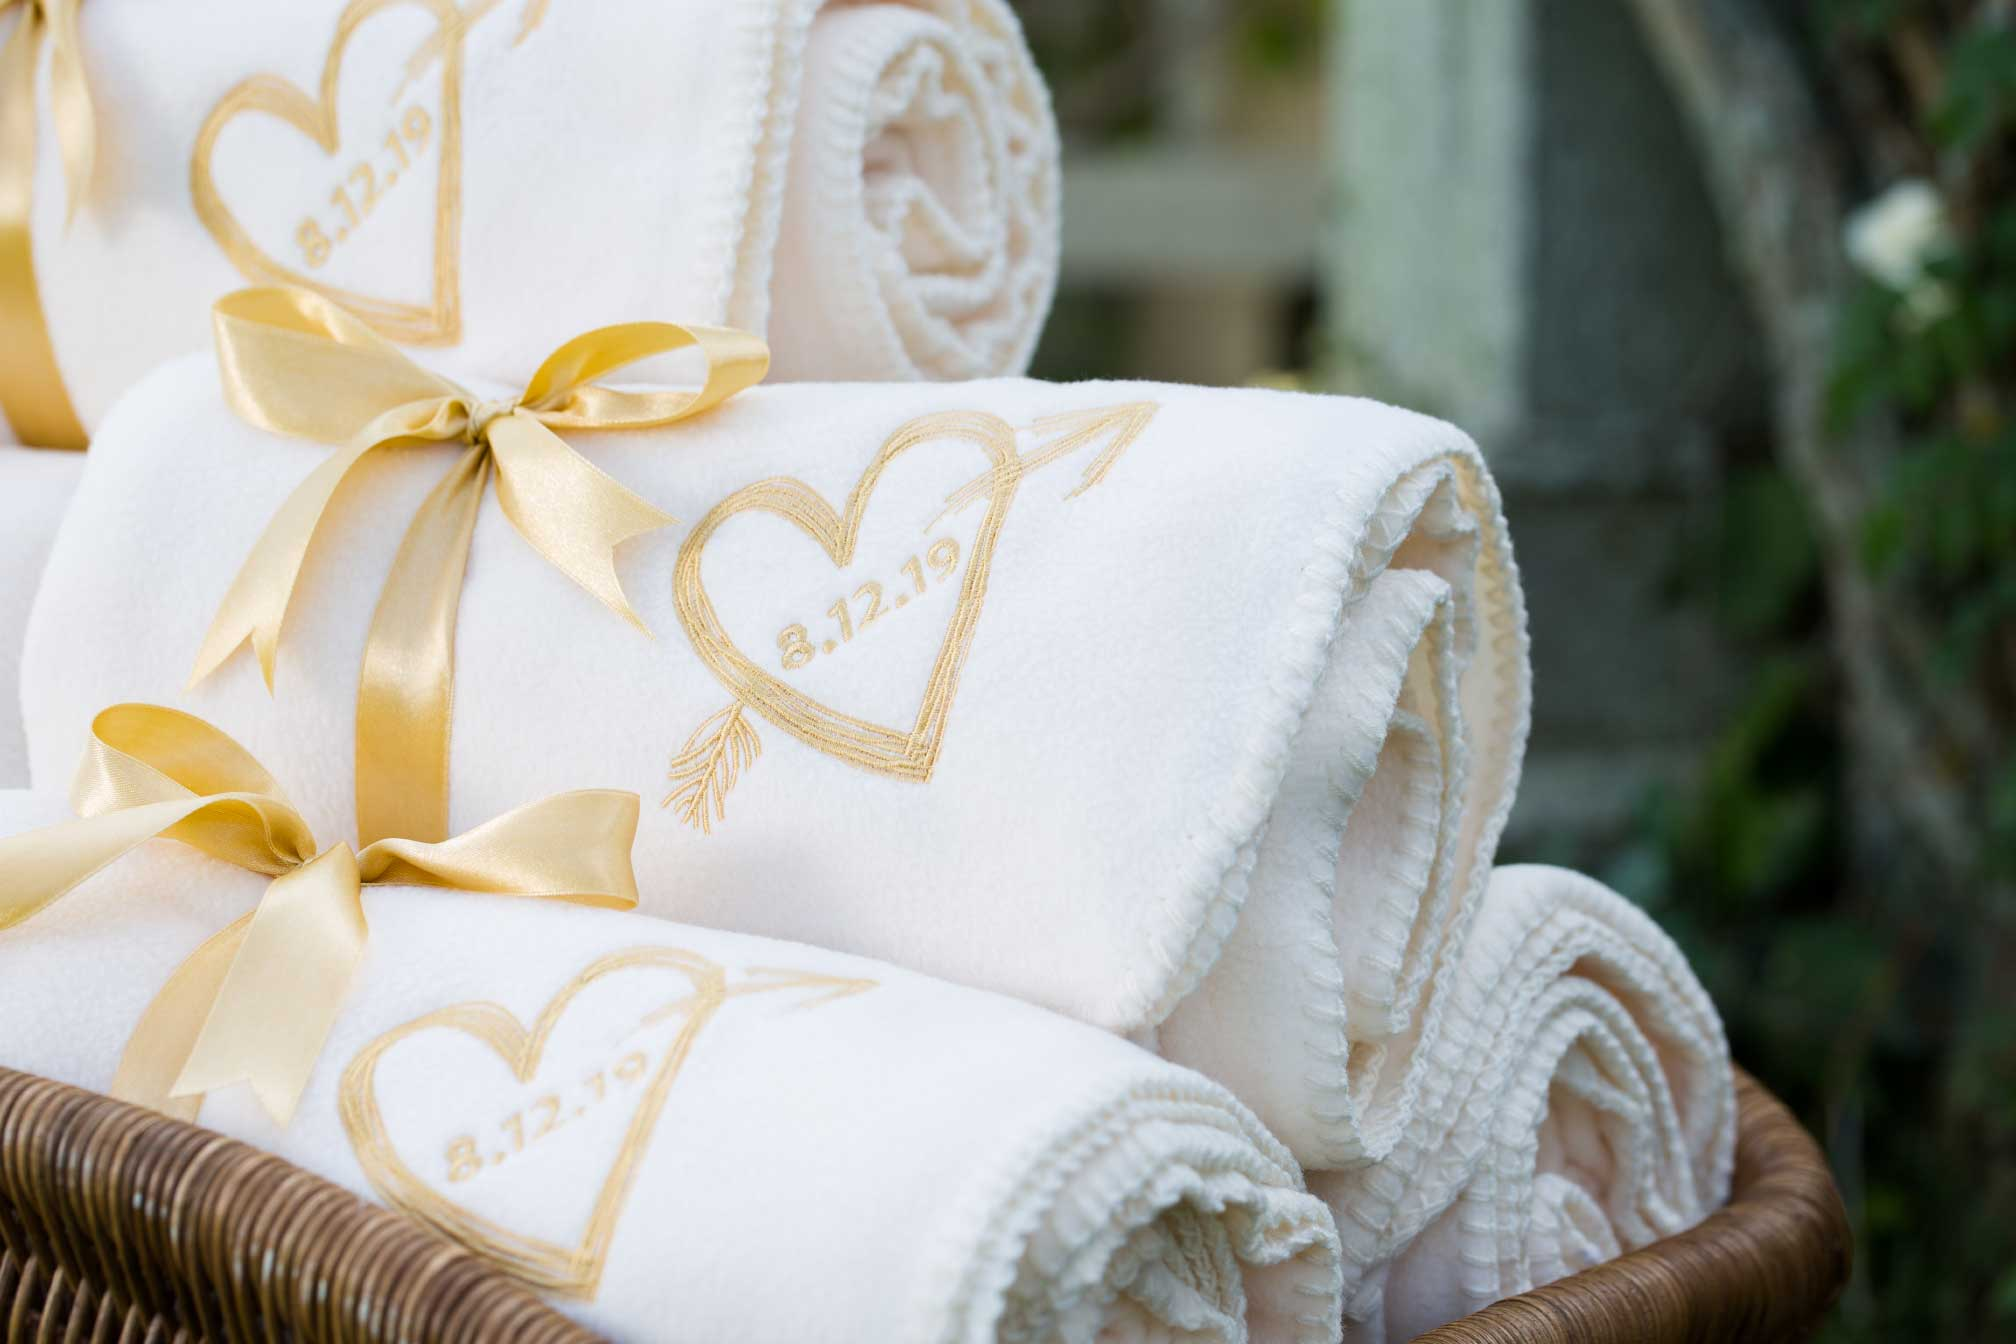 fleece blankets as winter wedding favors